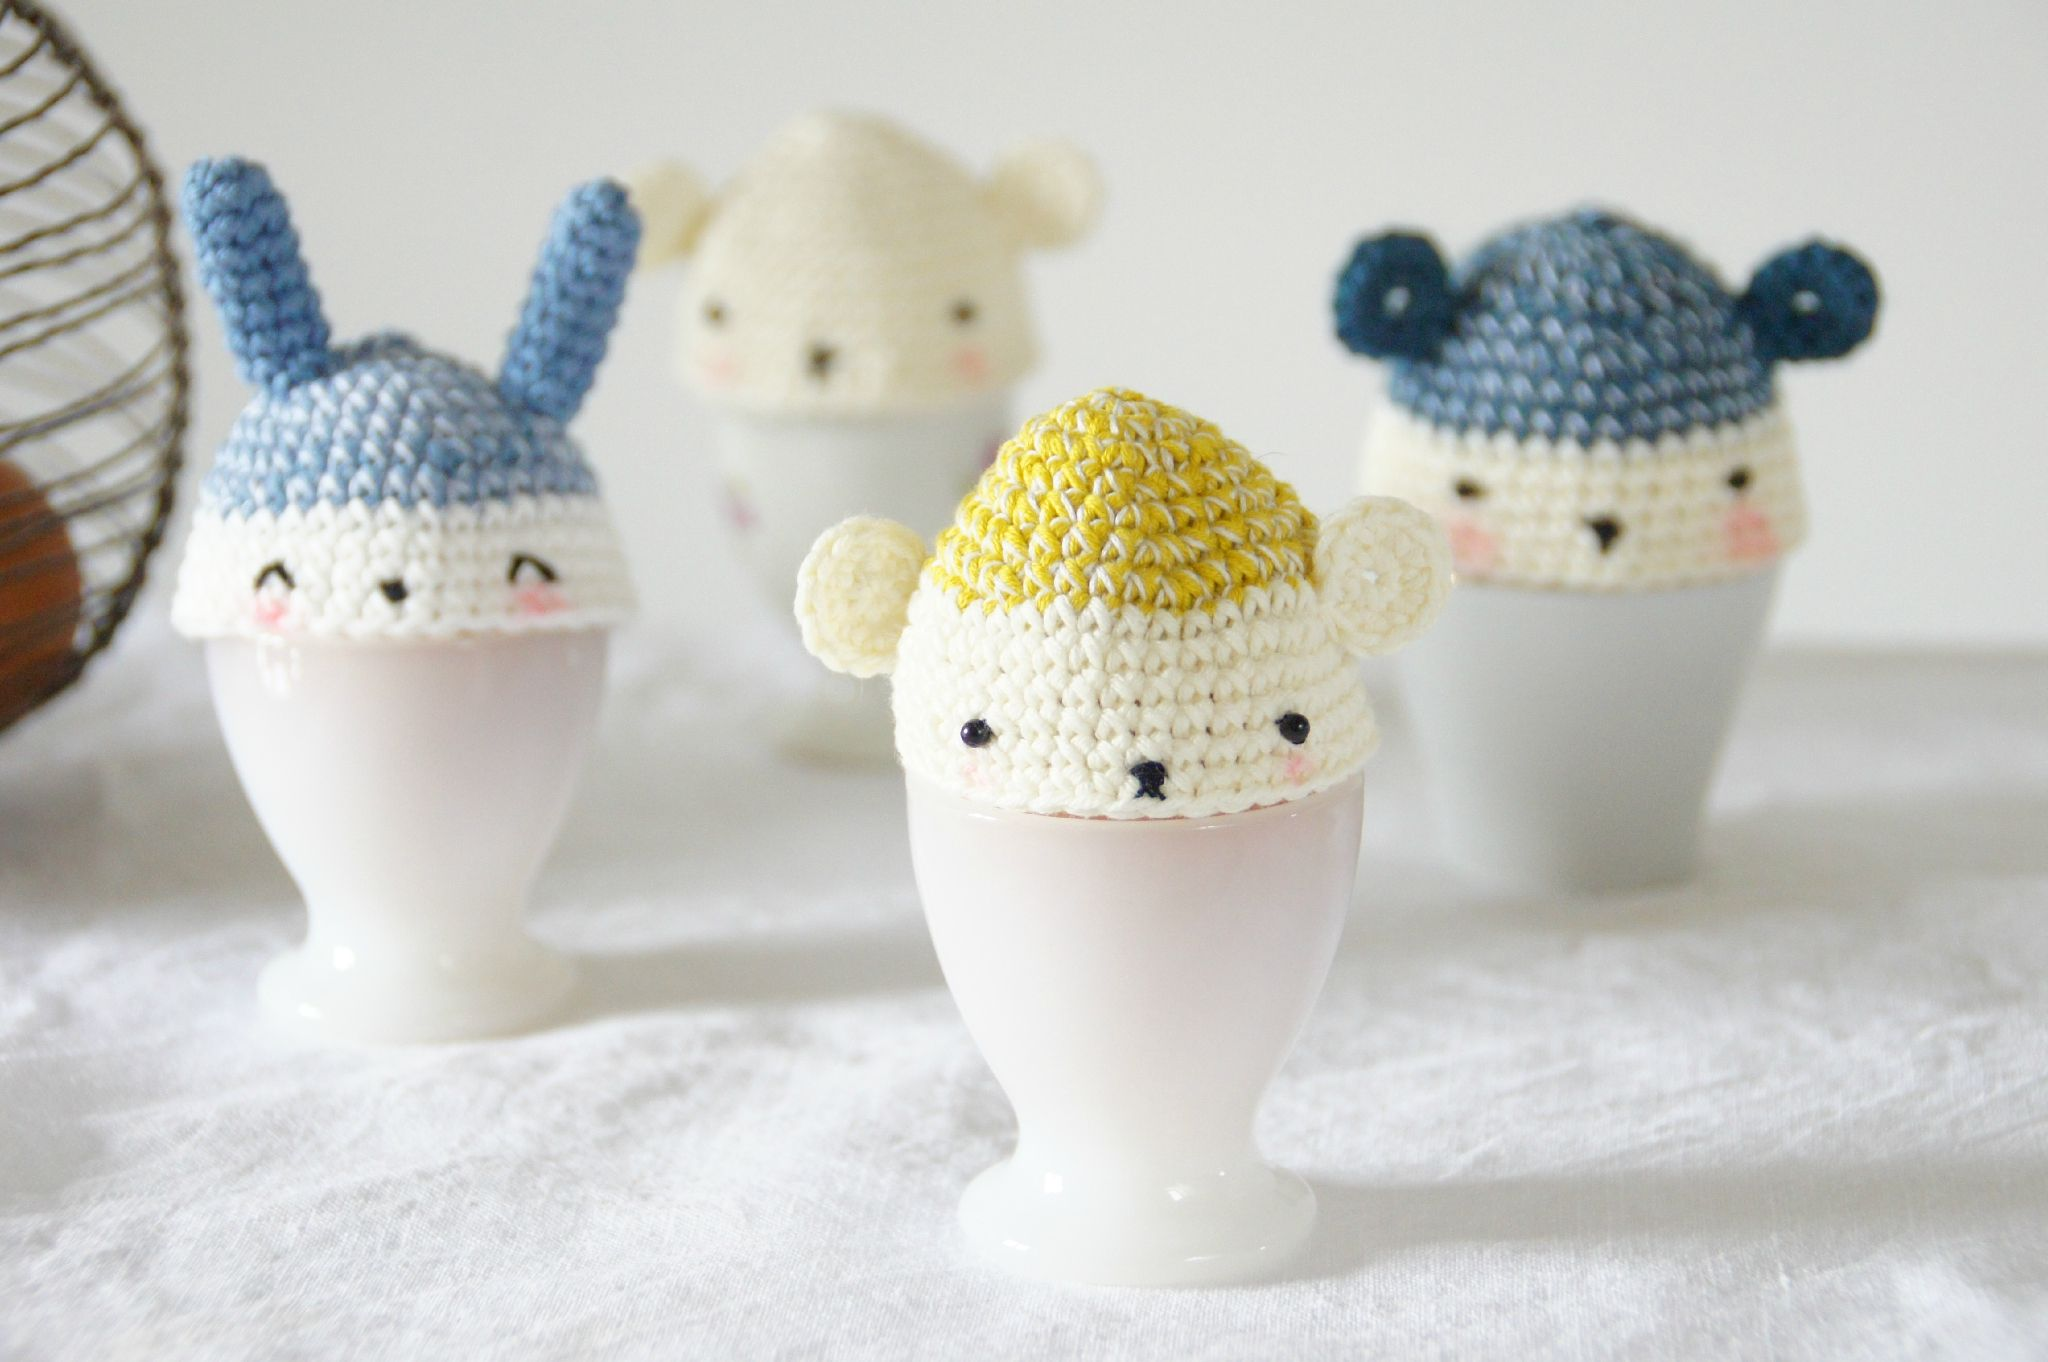 Free crochet pattern for egg cozies (in French) | haken to do ...